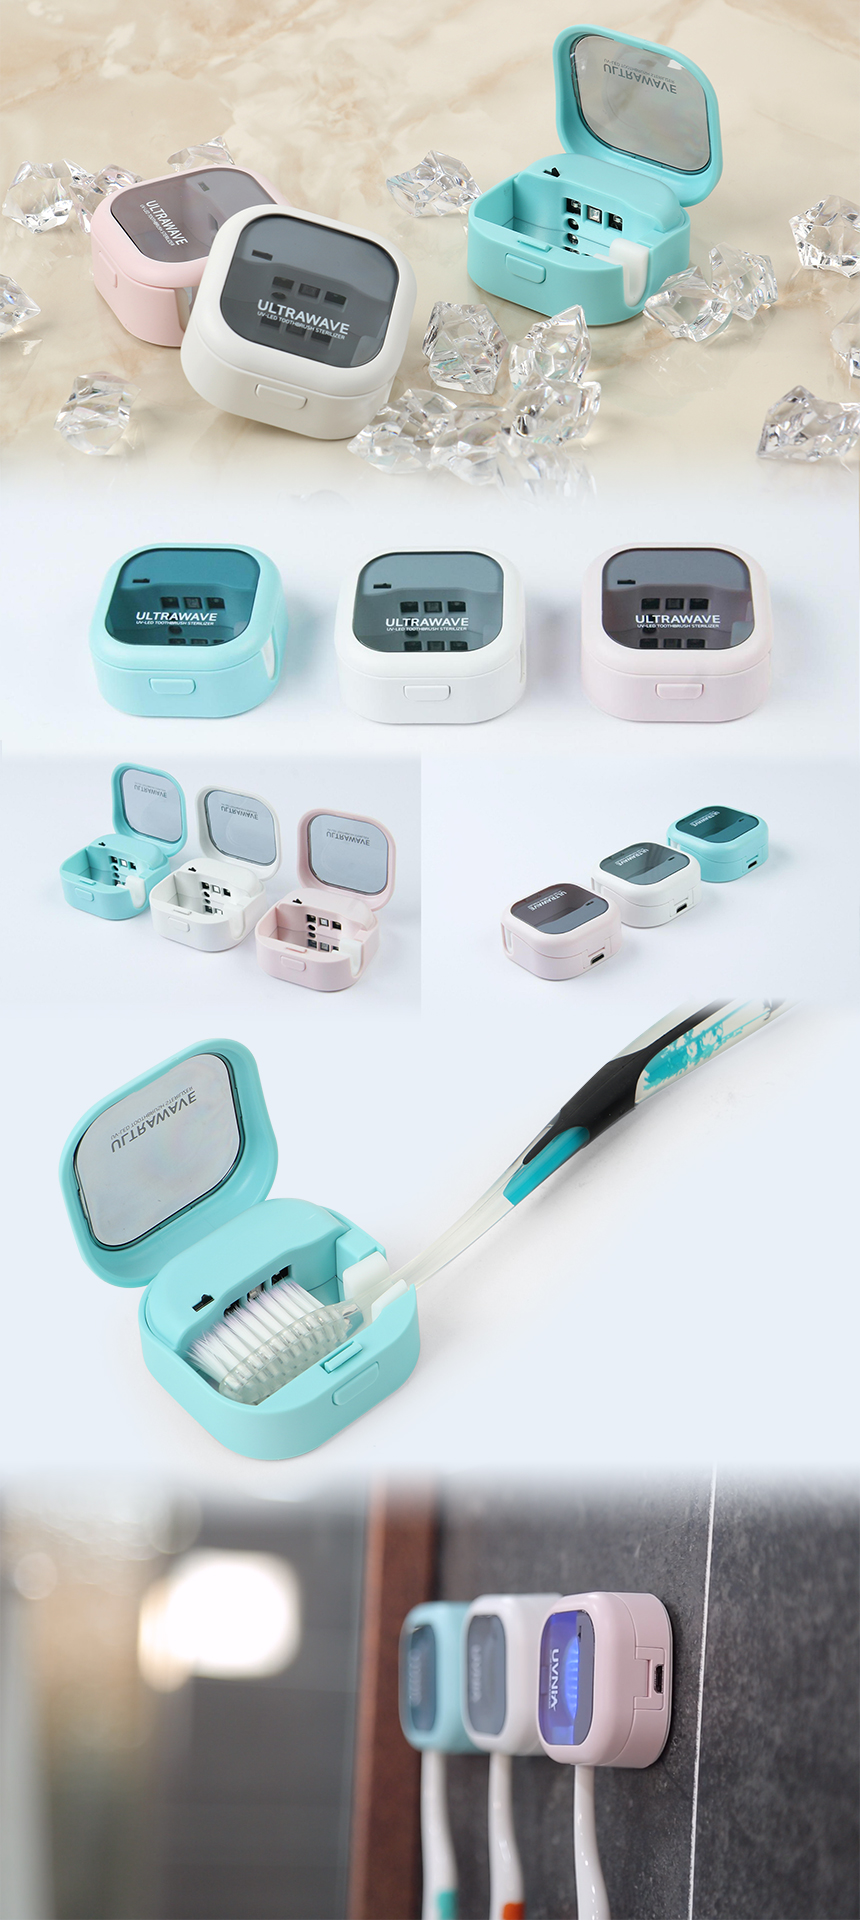 Rechargeable toothbrush sanitization cap